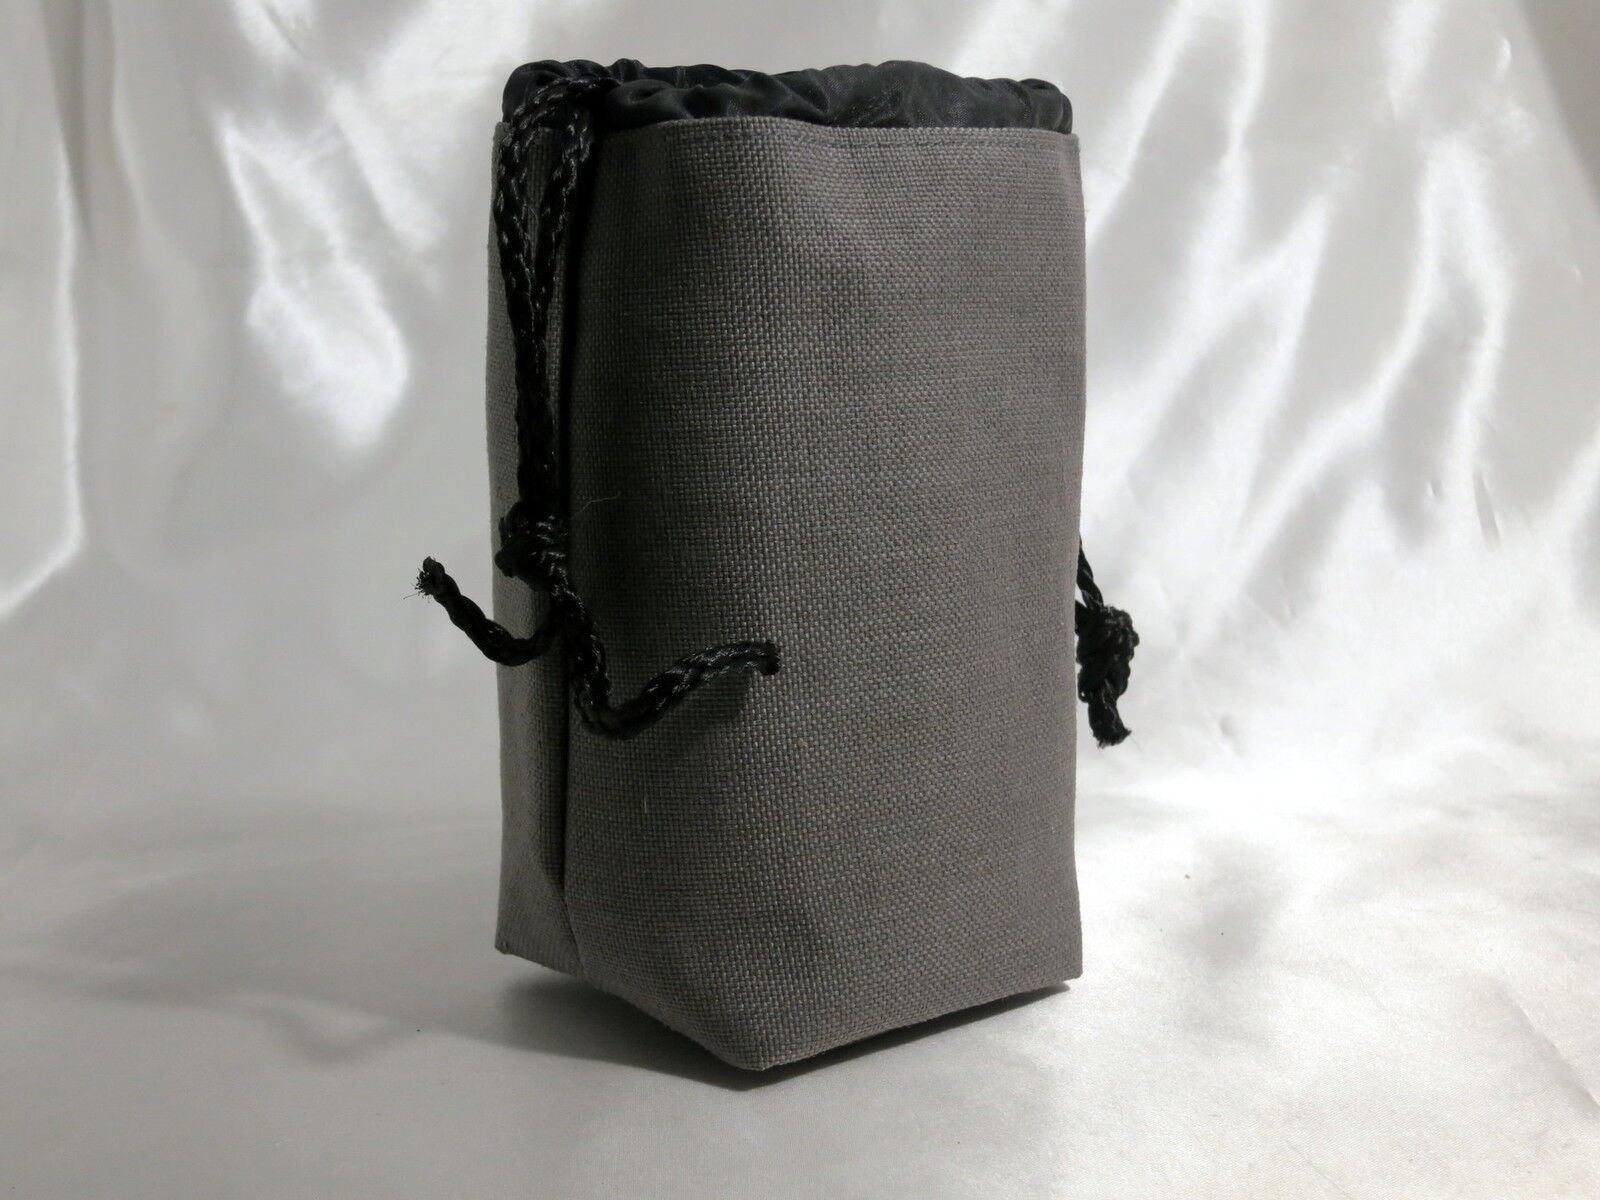 Soft Gray Fabric Lens protective Case Pouch h5.5